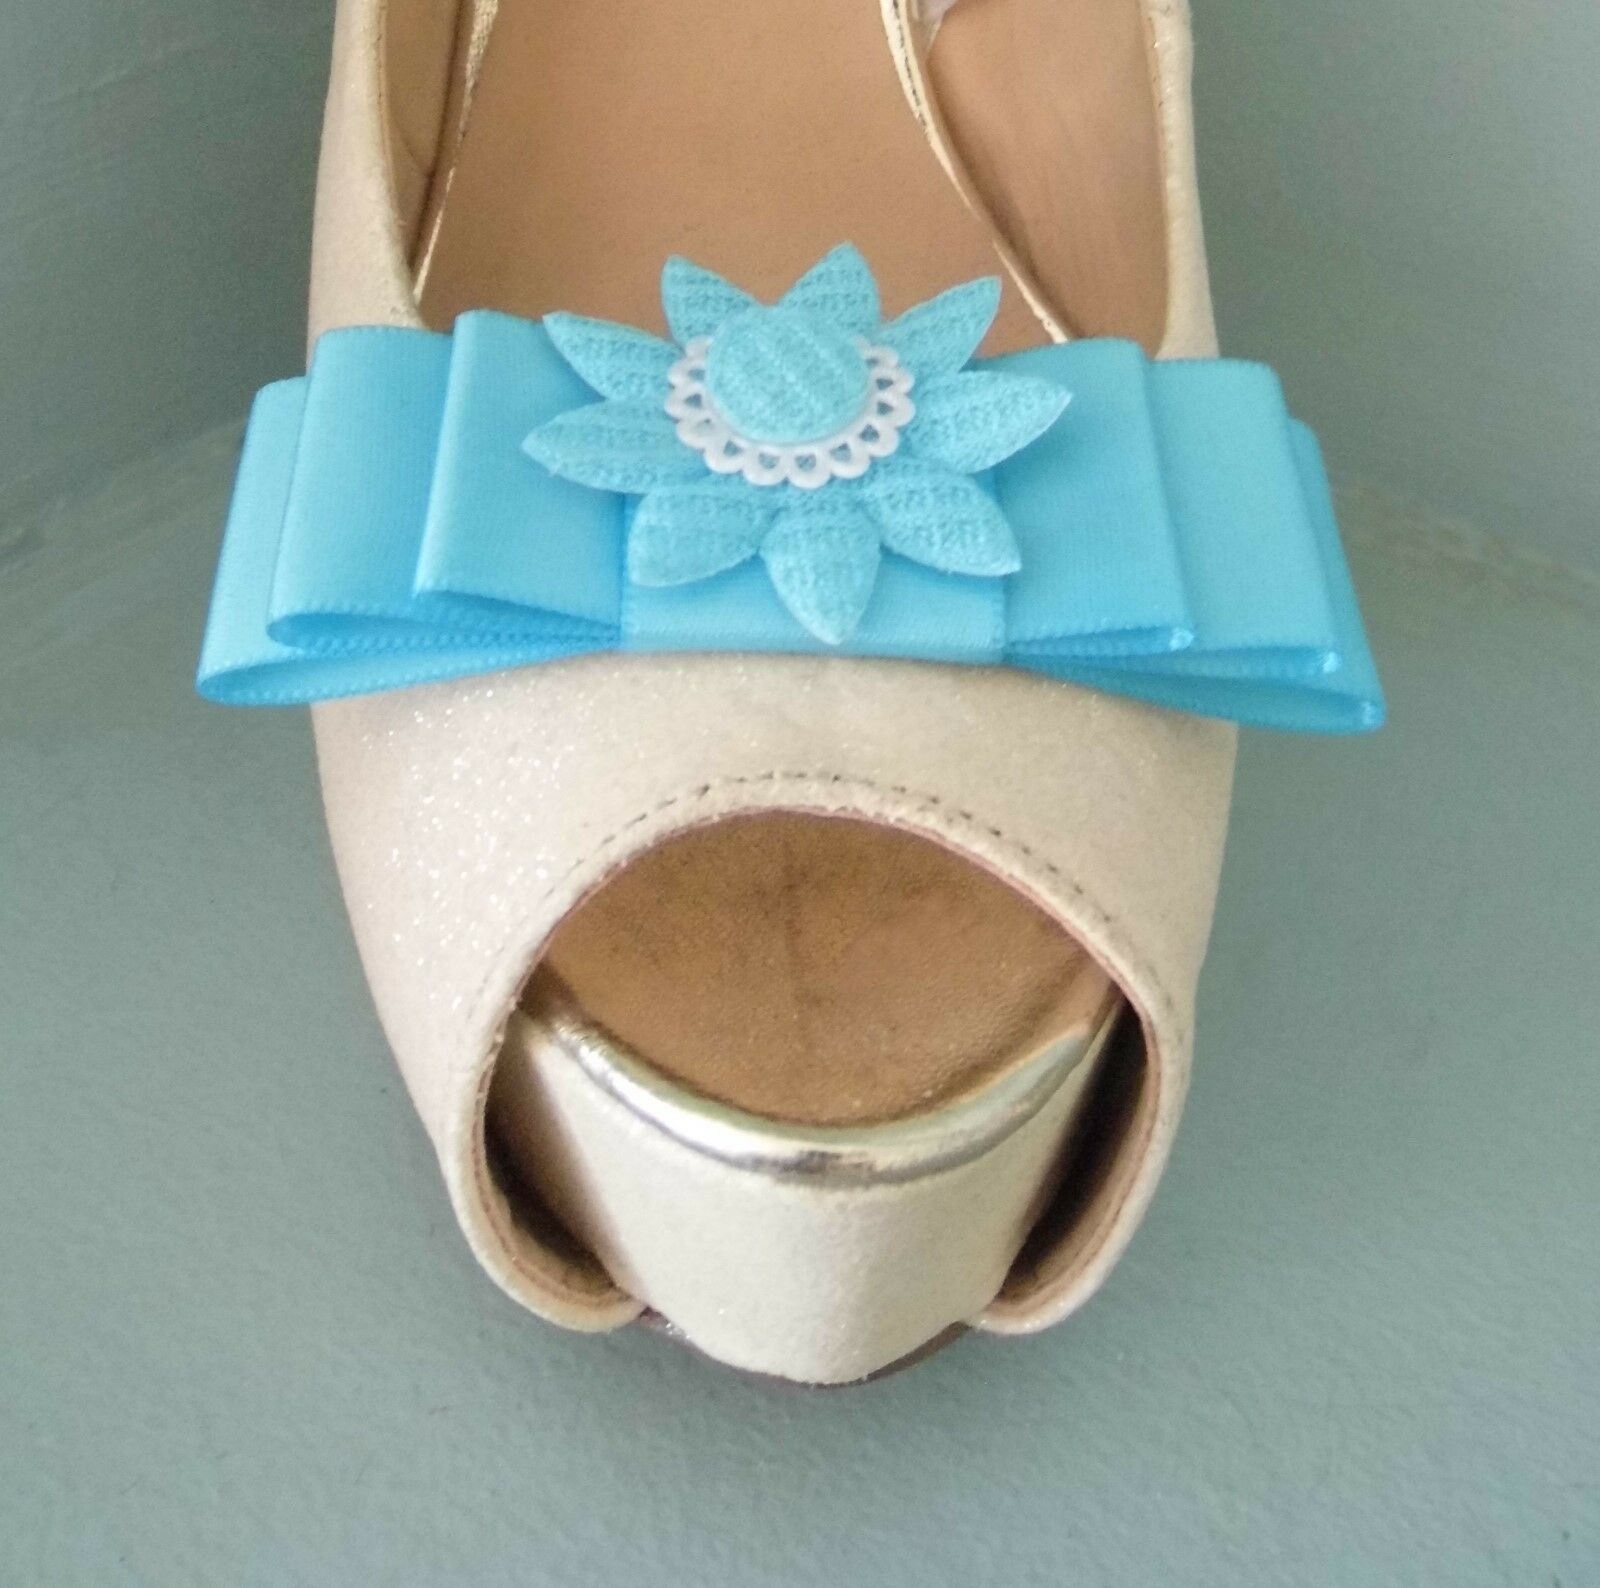 2 Turquoise Bow Clips for Shoes with Crochet Style Flower Centre